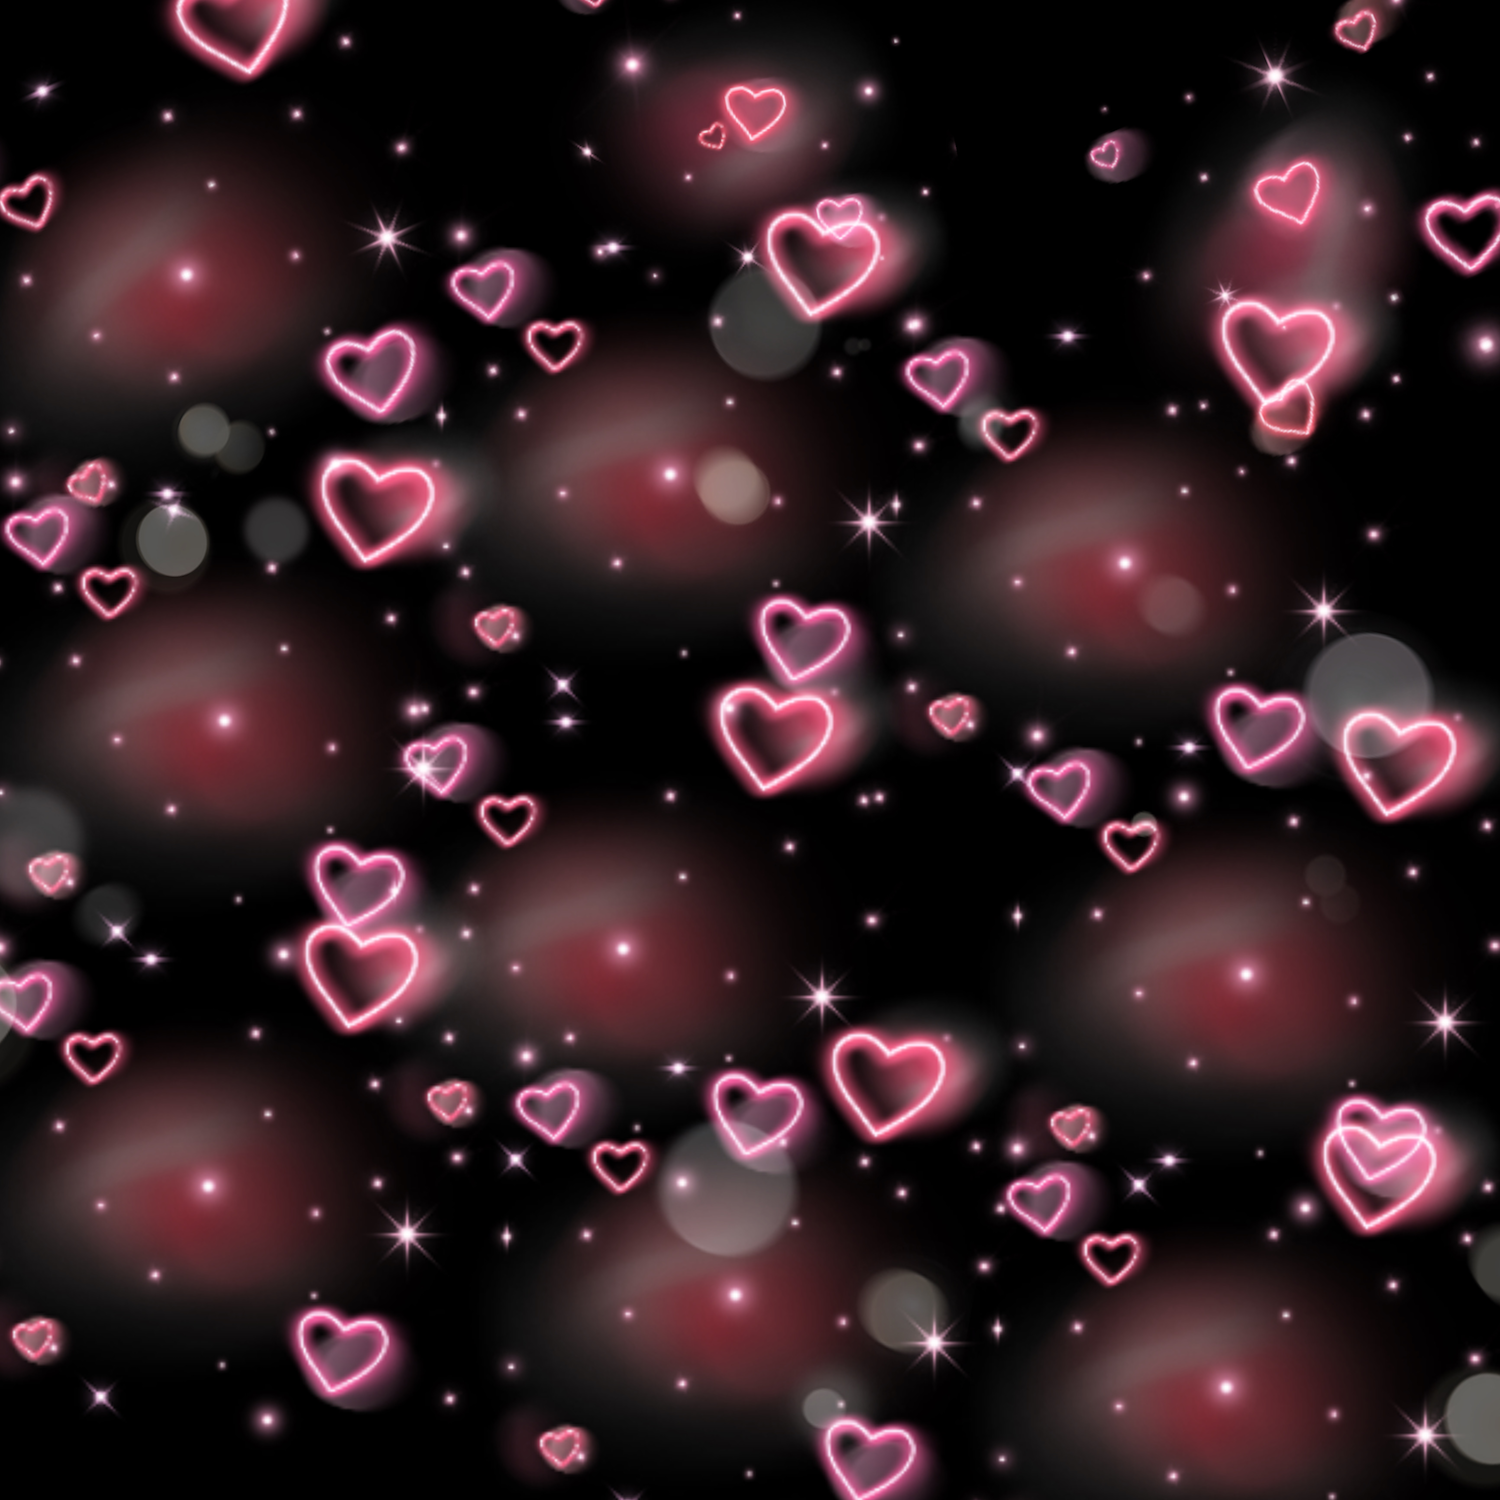 Neon pink hearts on a black background. Photo edit created by Amir Rivers.